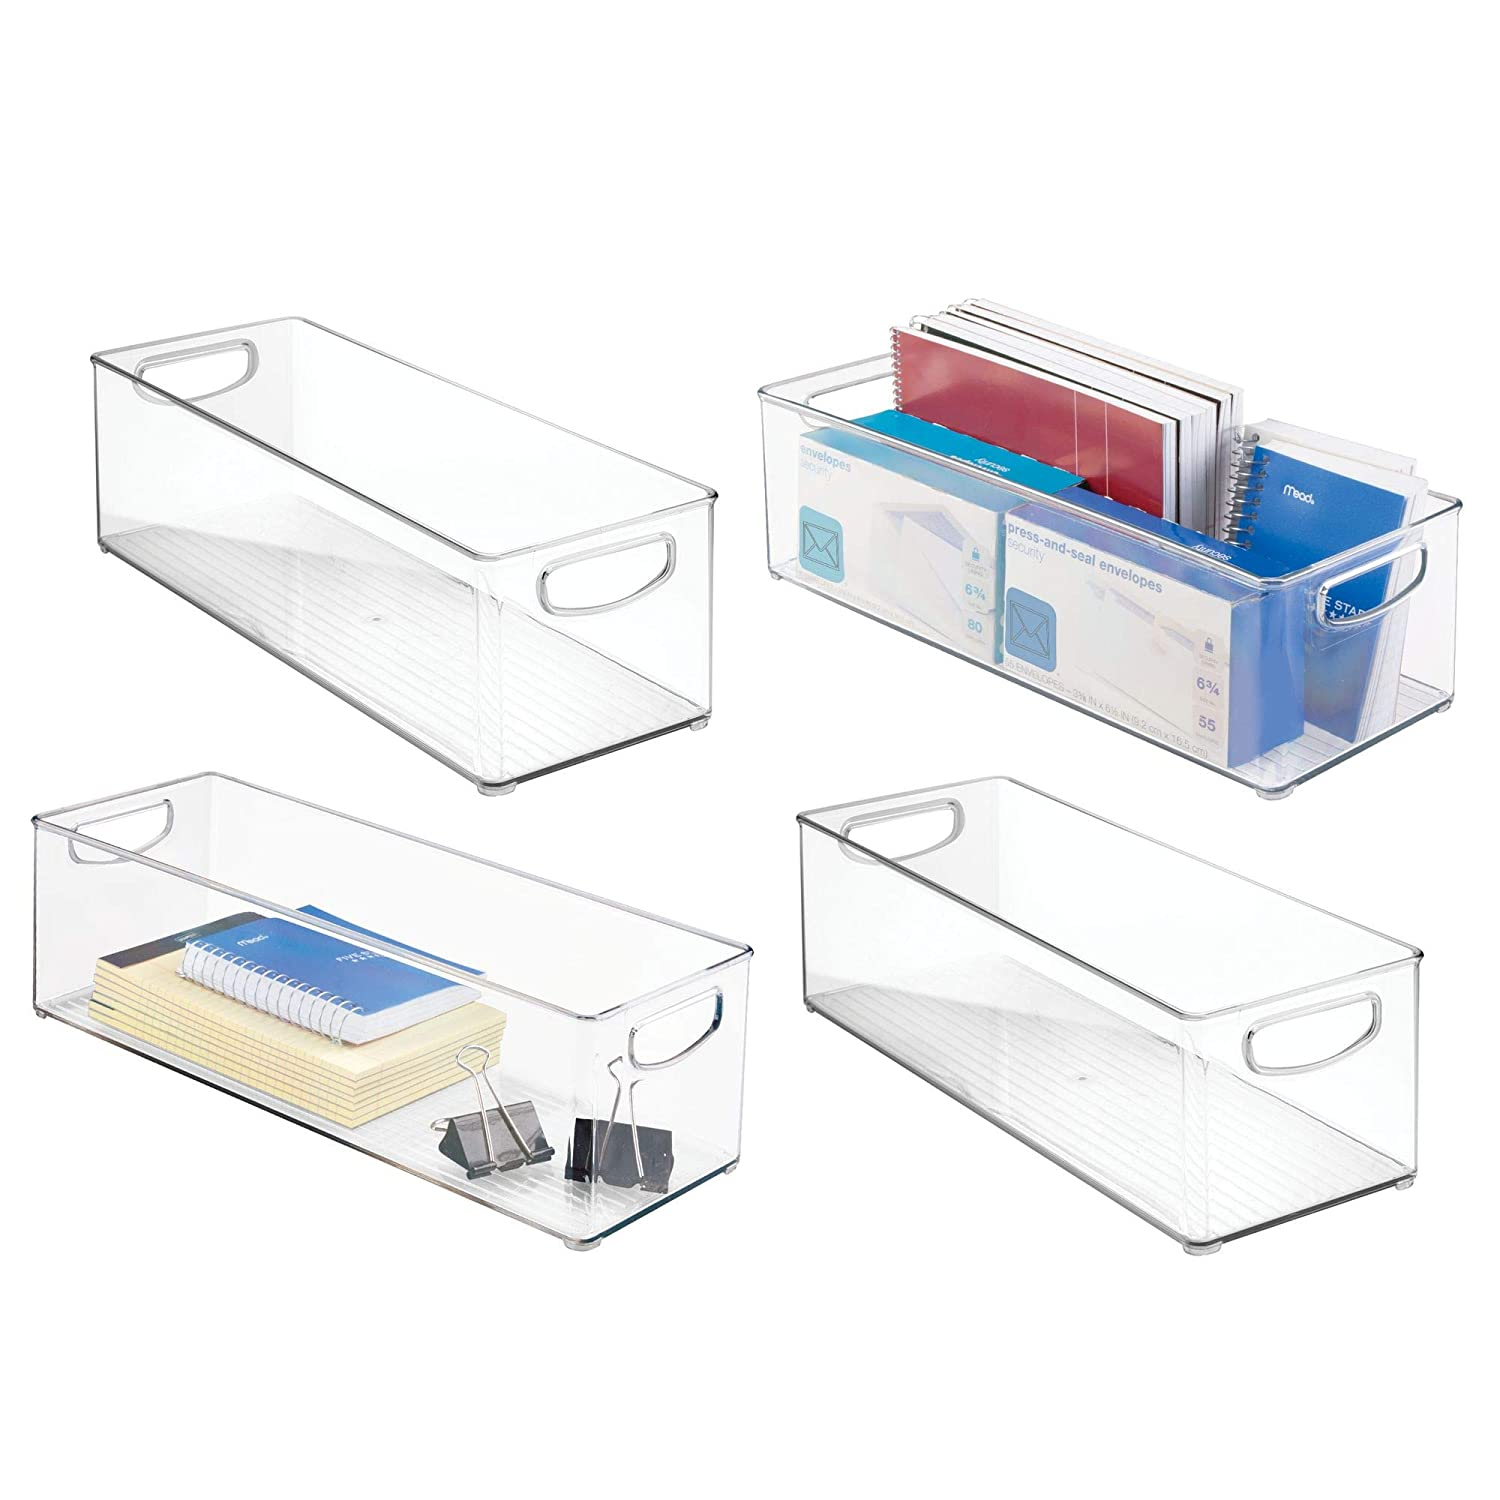 mDesign Office Supplies Desk Organizer Bin for Rulers, Notepads, Markers, Pencils - Pack of 2, Large, Clear MetroDecor 3551MDO